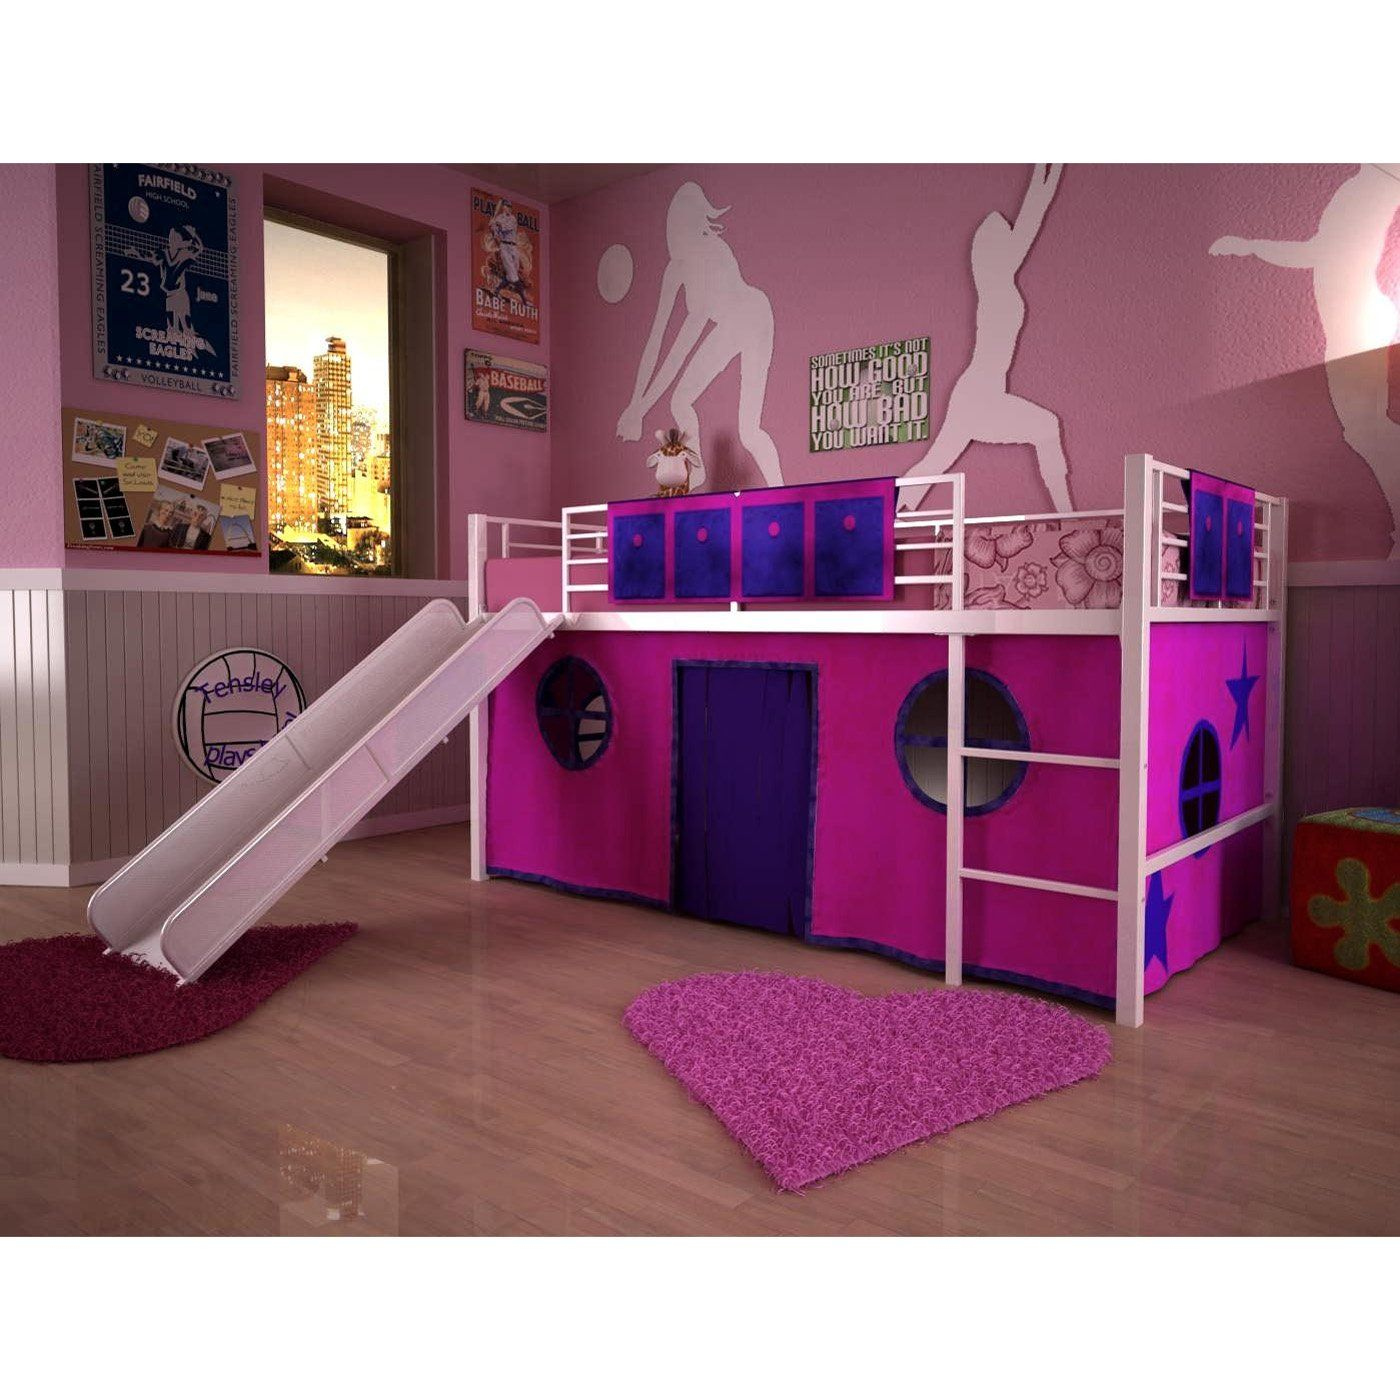 Bunk bed with desk for teenagers - Pink Loft Beds For Teenagers Loft Beds For